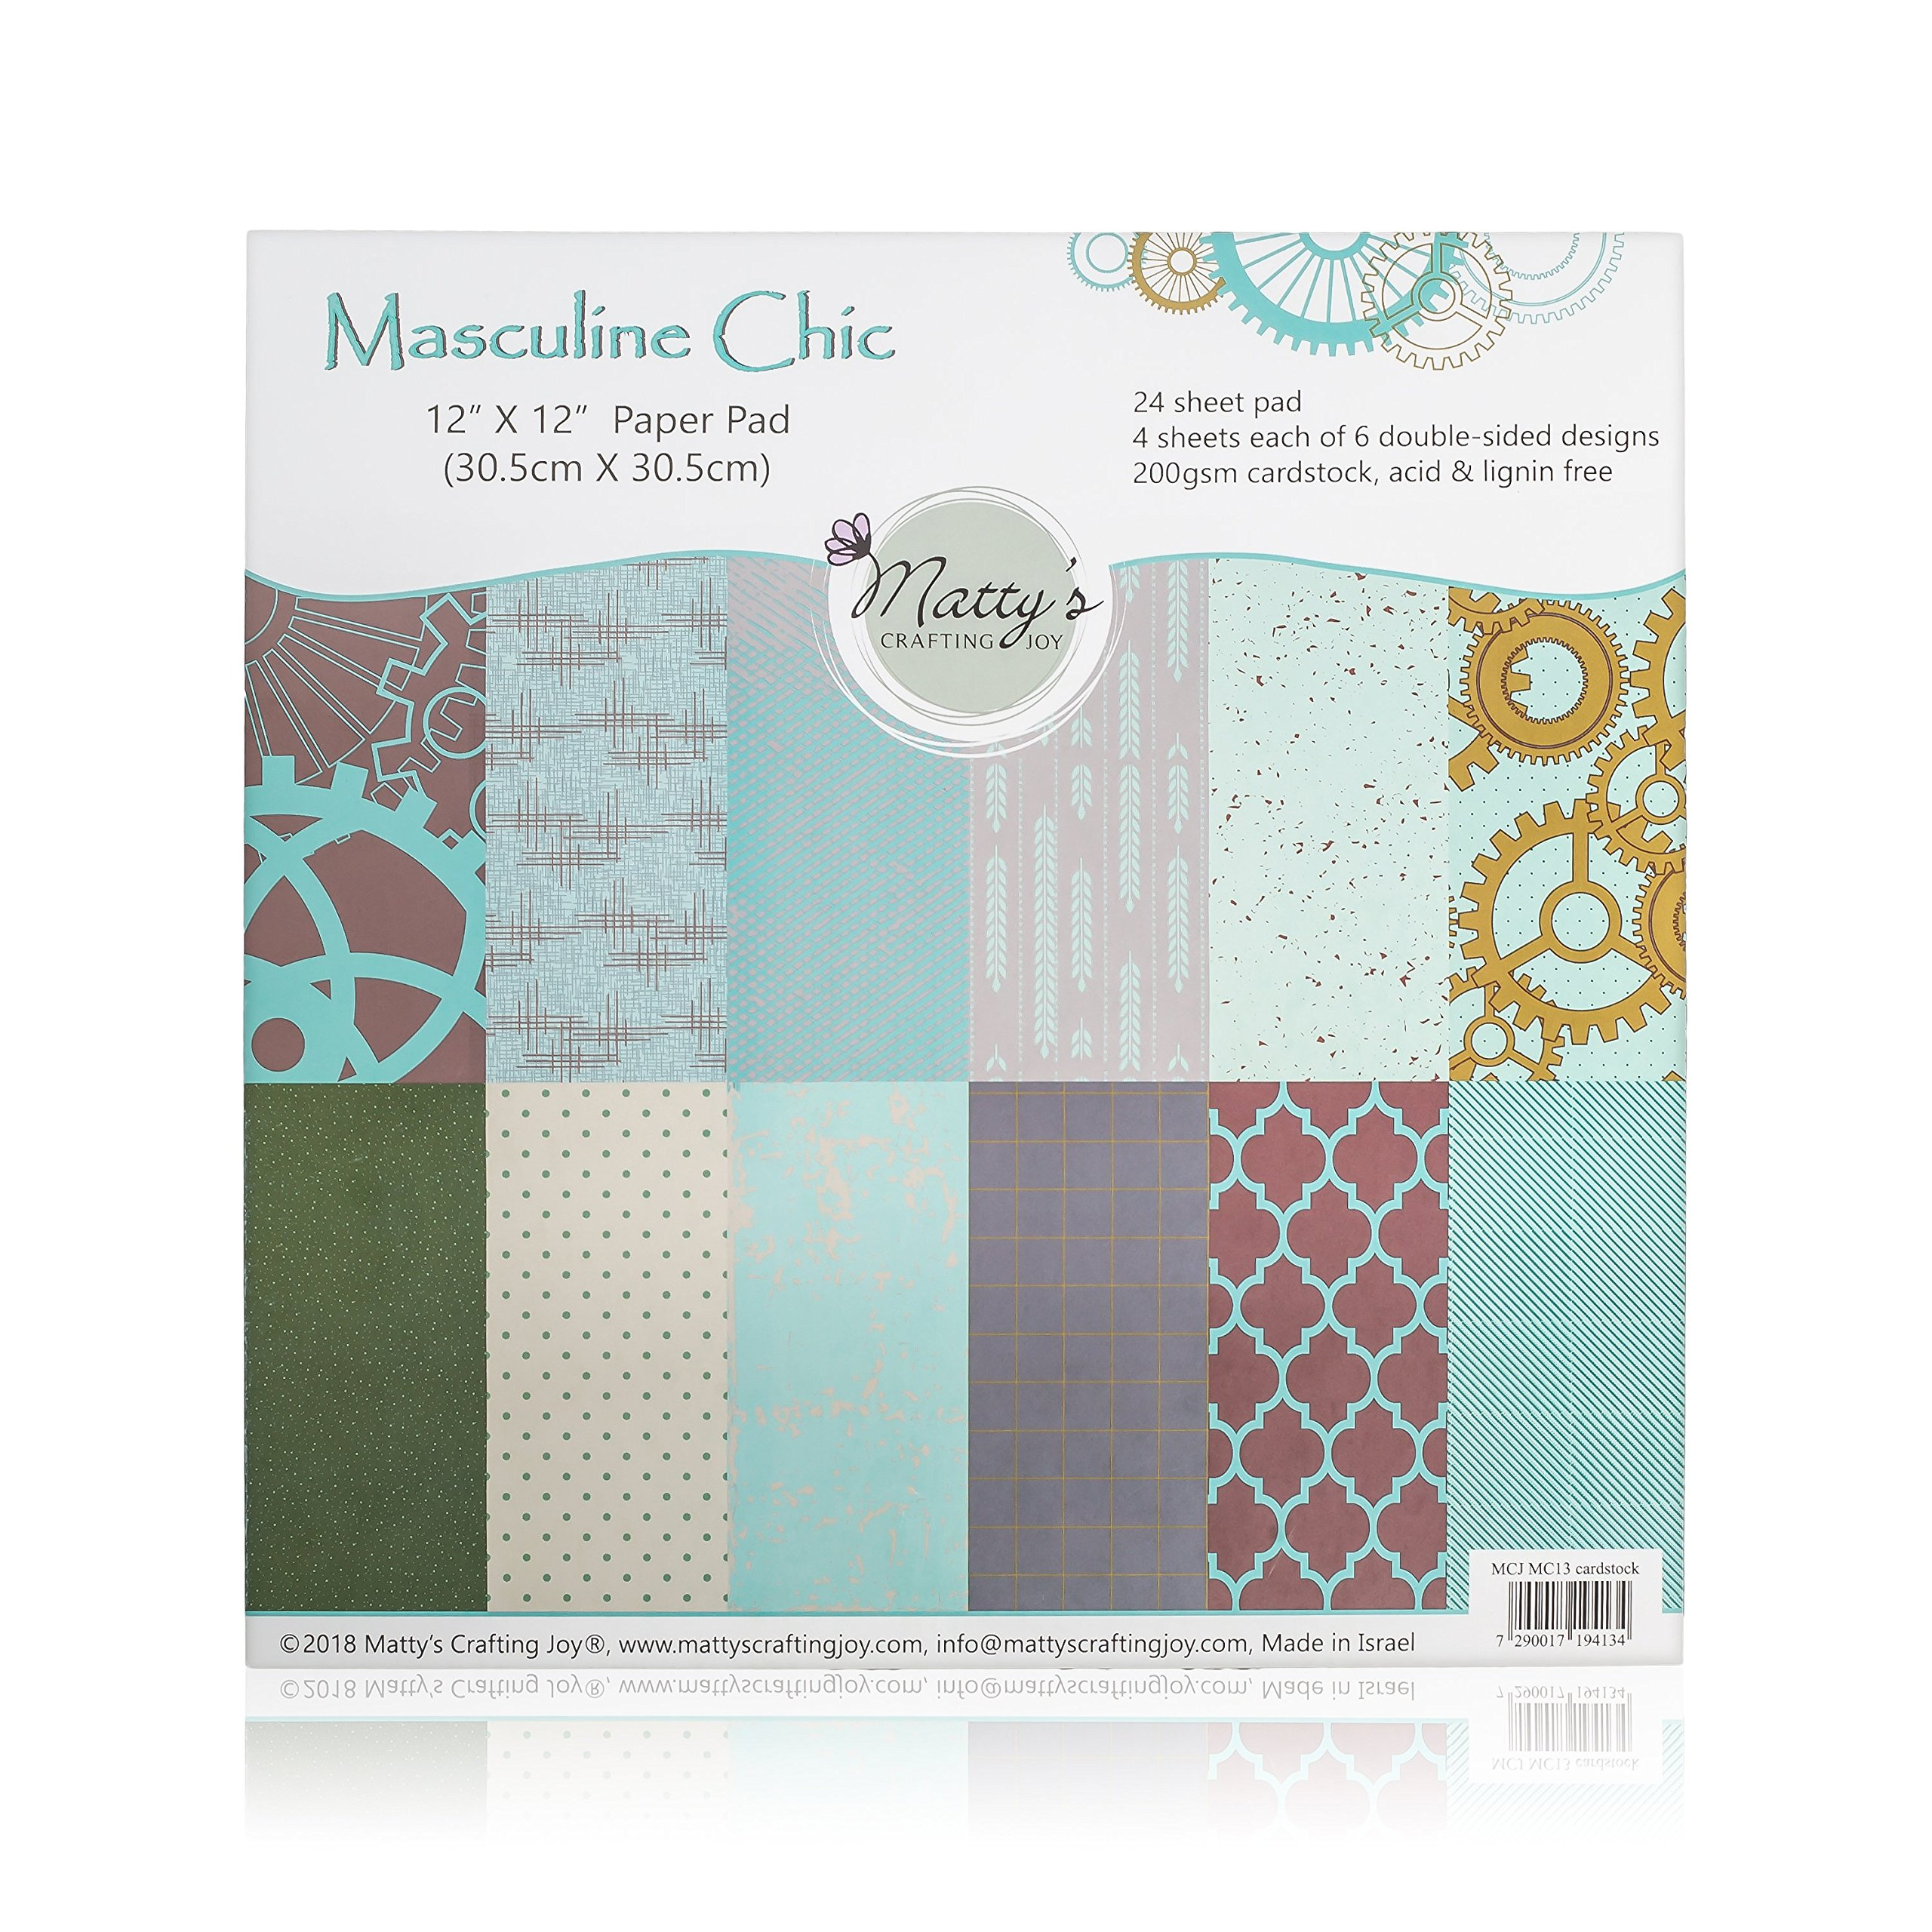 Matty's Crafting Joy Masculine Chic - 12x12 Double Sided Turquoise Scrapbook Paper Pad, 24 Light Teal Blue Patterned Cardstock Paper Pack by Matty's Crafting Joy